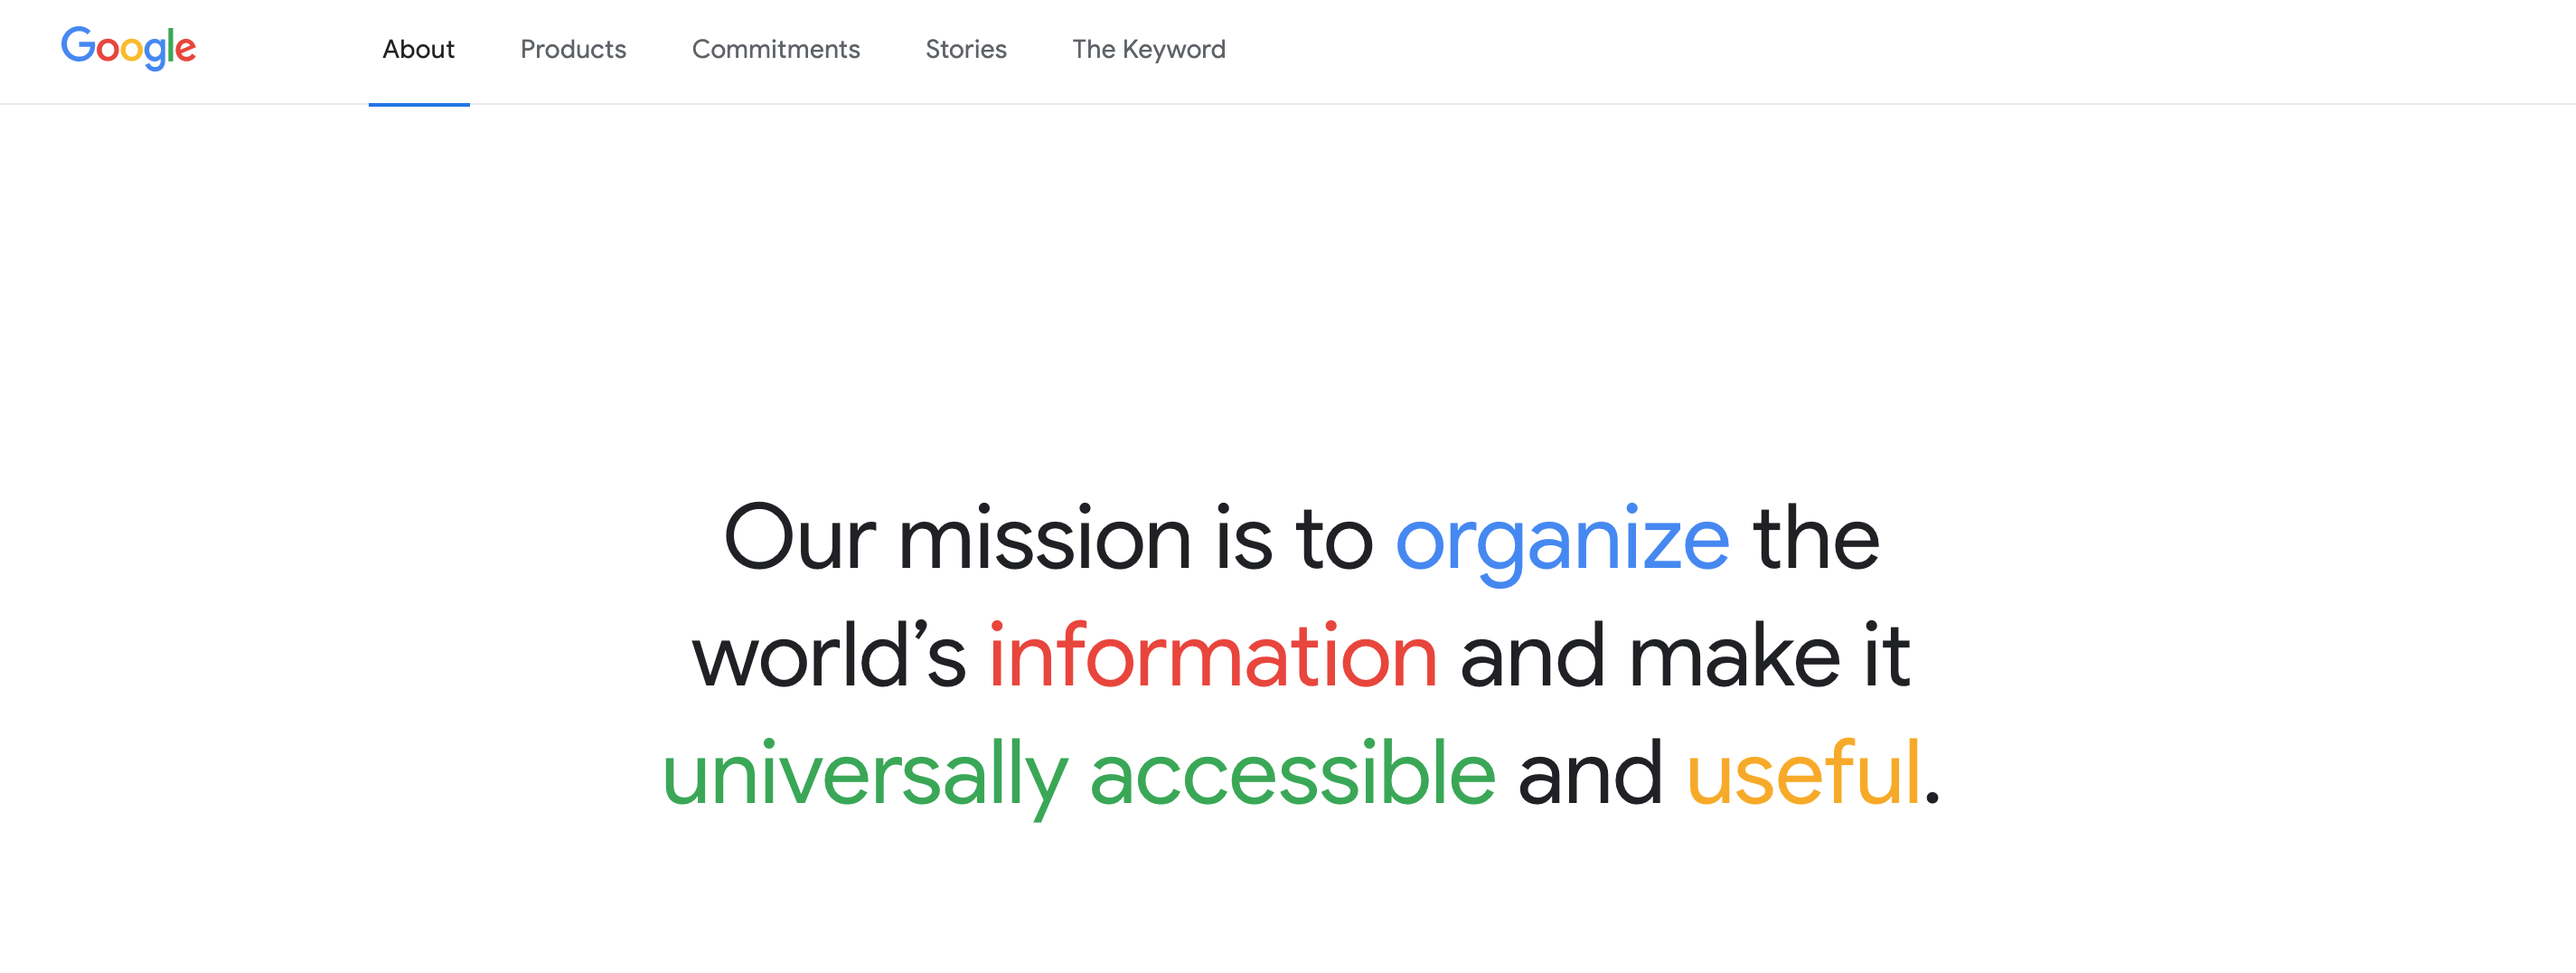 Google's home page with mission statement